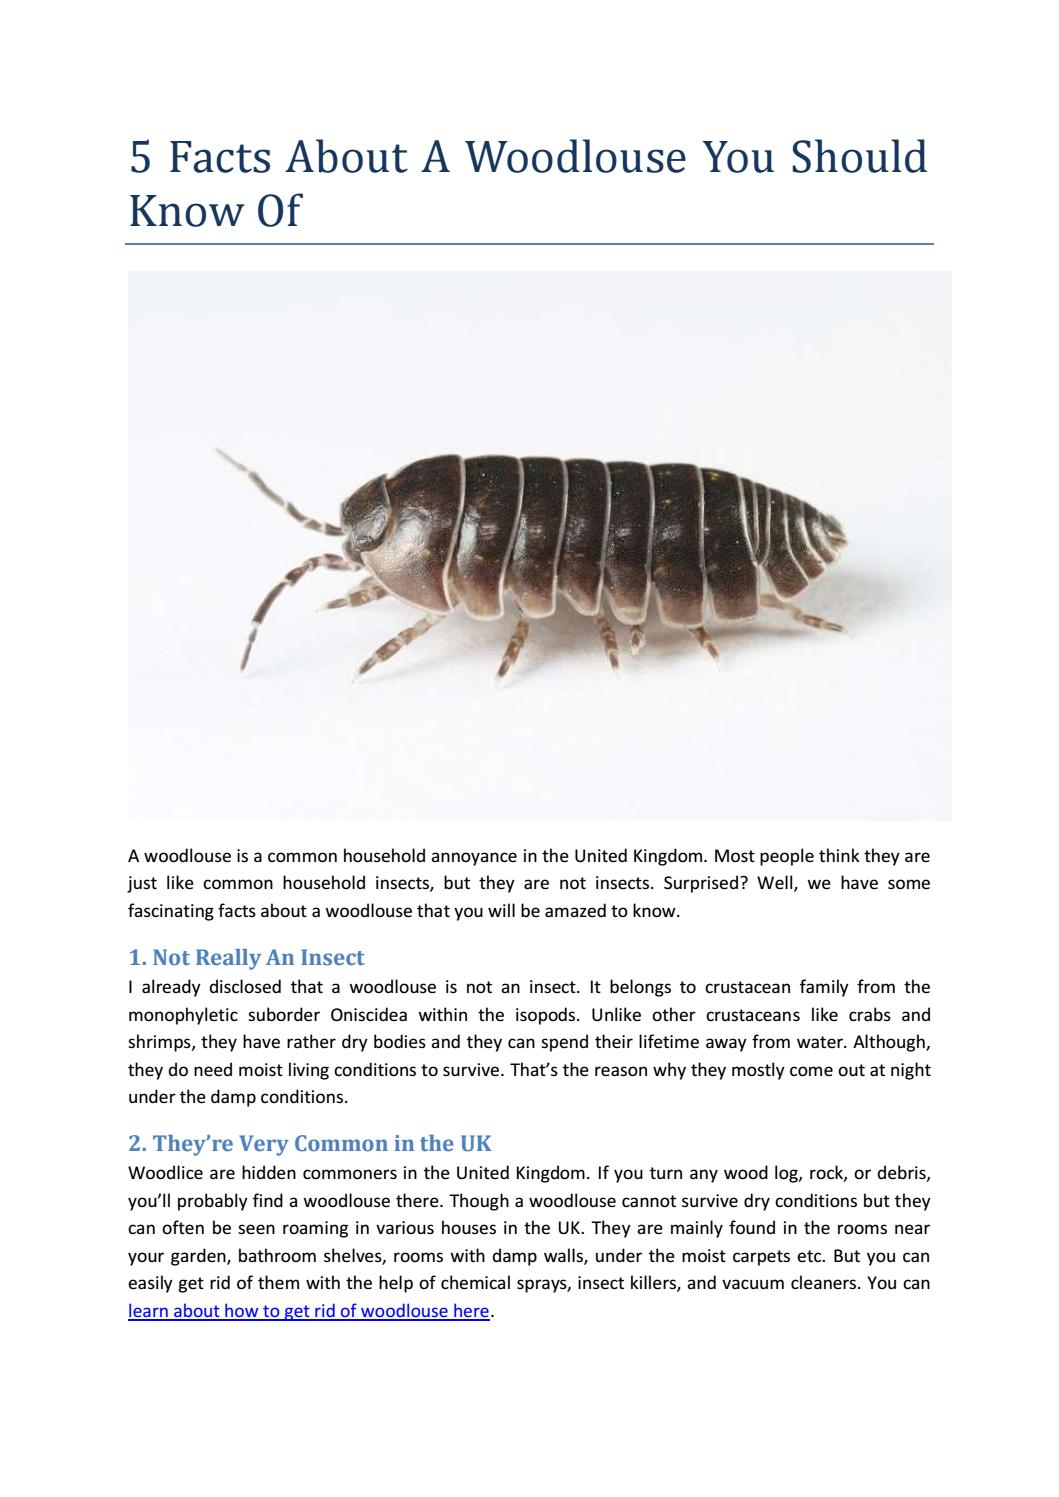 5 Interesting Facts About Woodlouse by Homilly - issuu